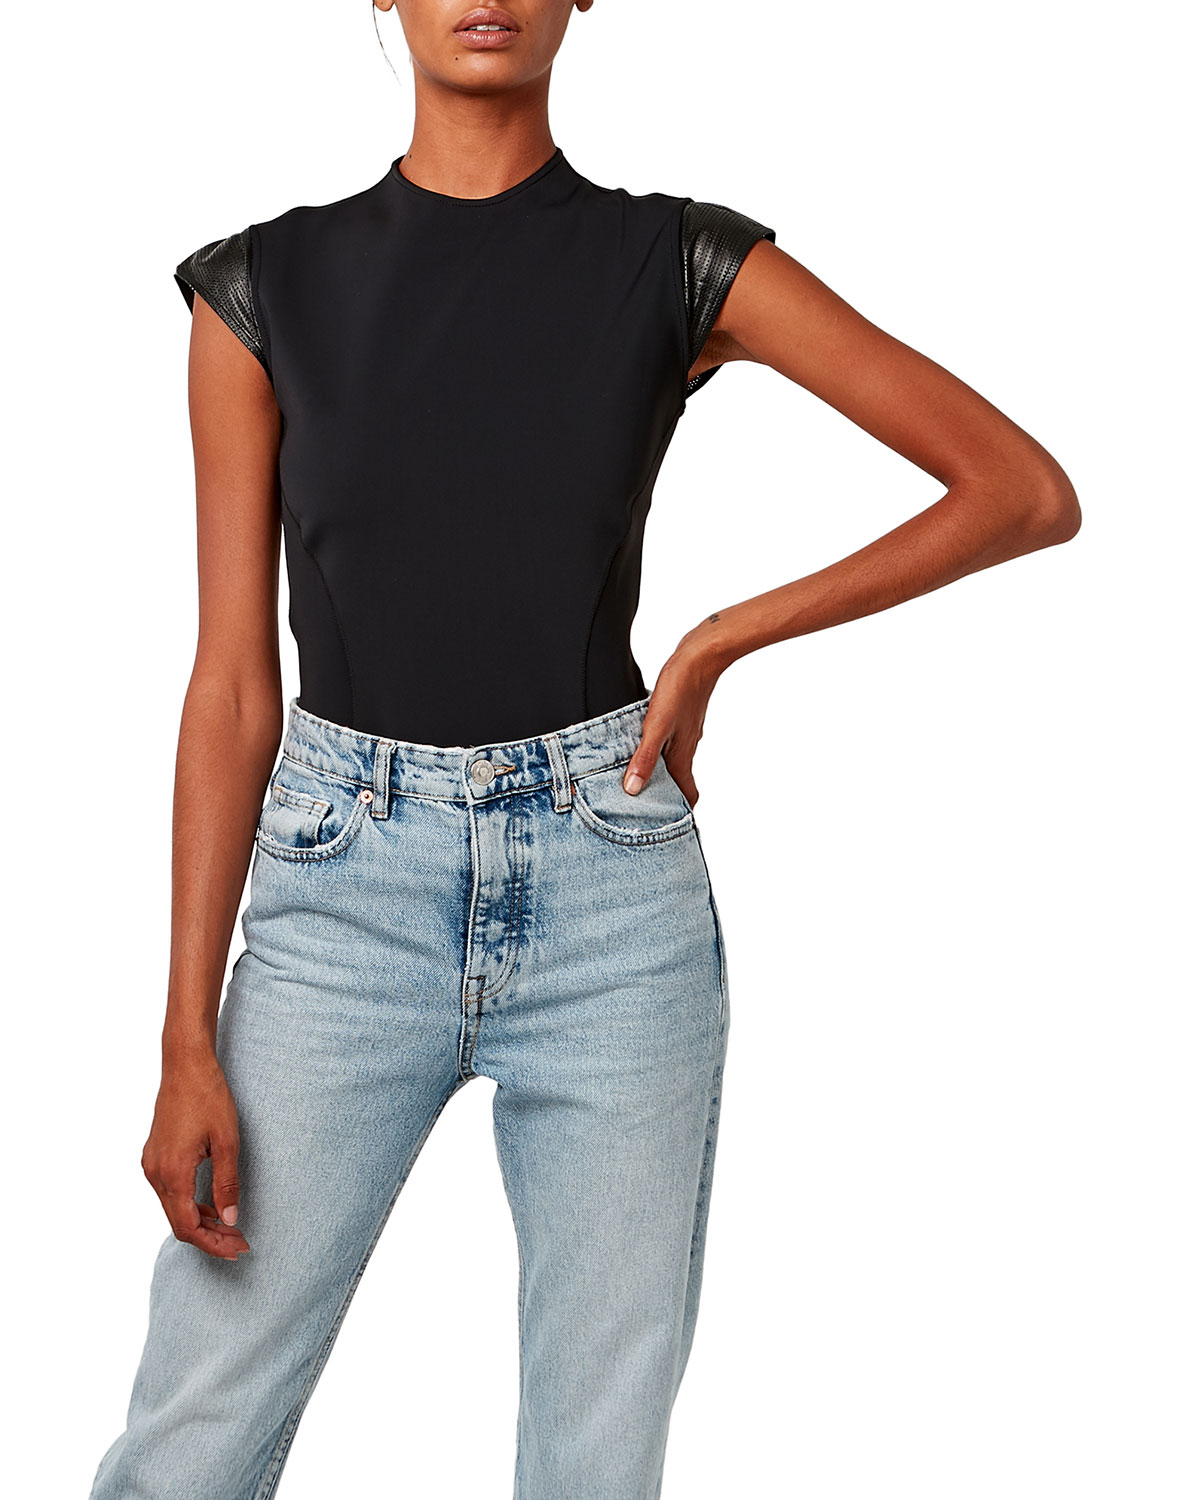 Rio Neoprene Top with Leather Cap Sleeves